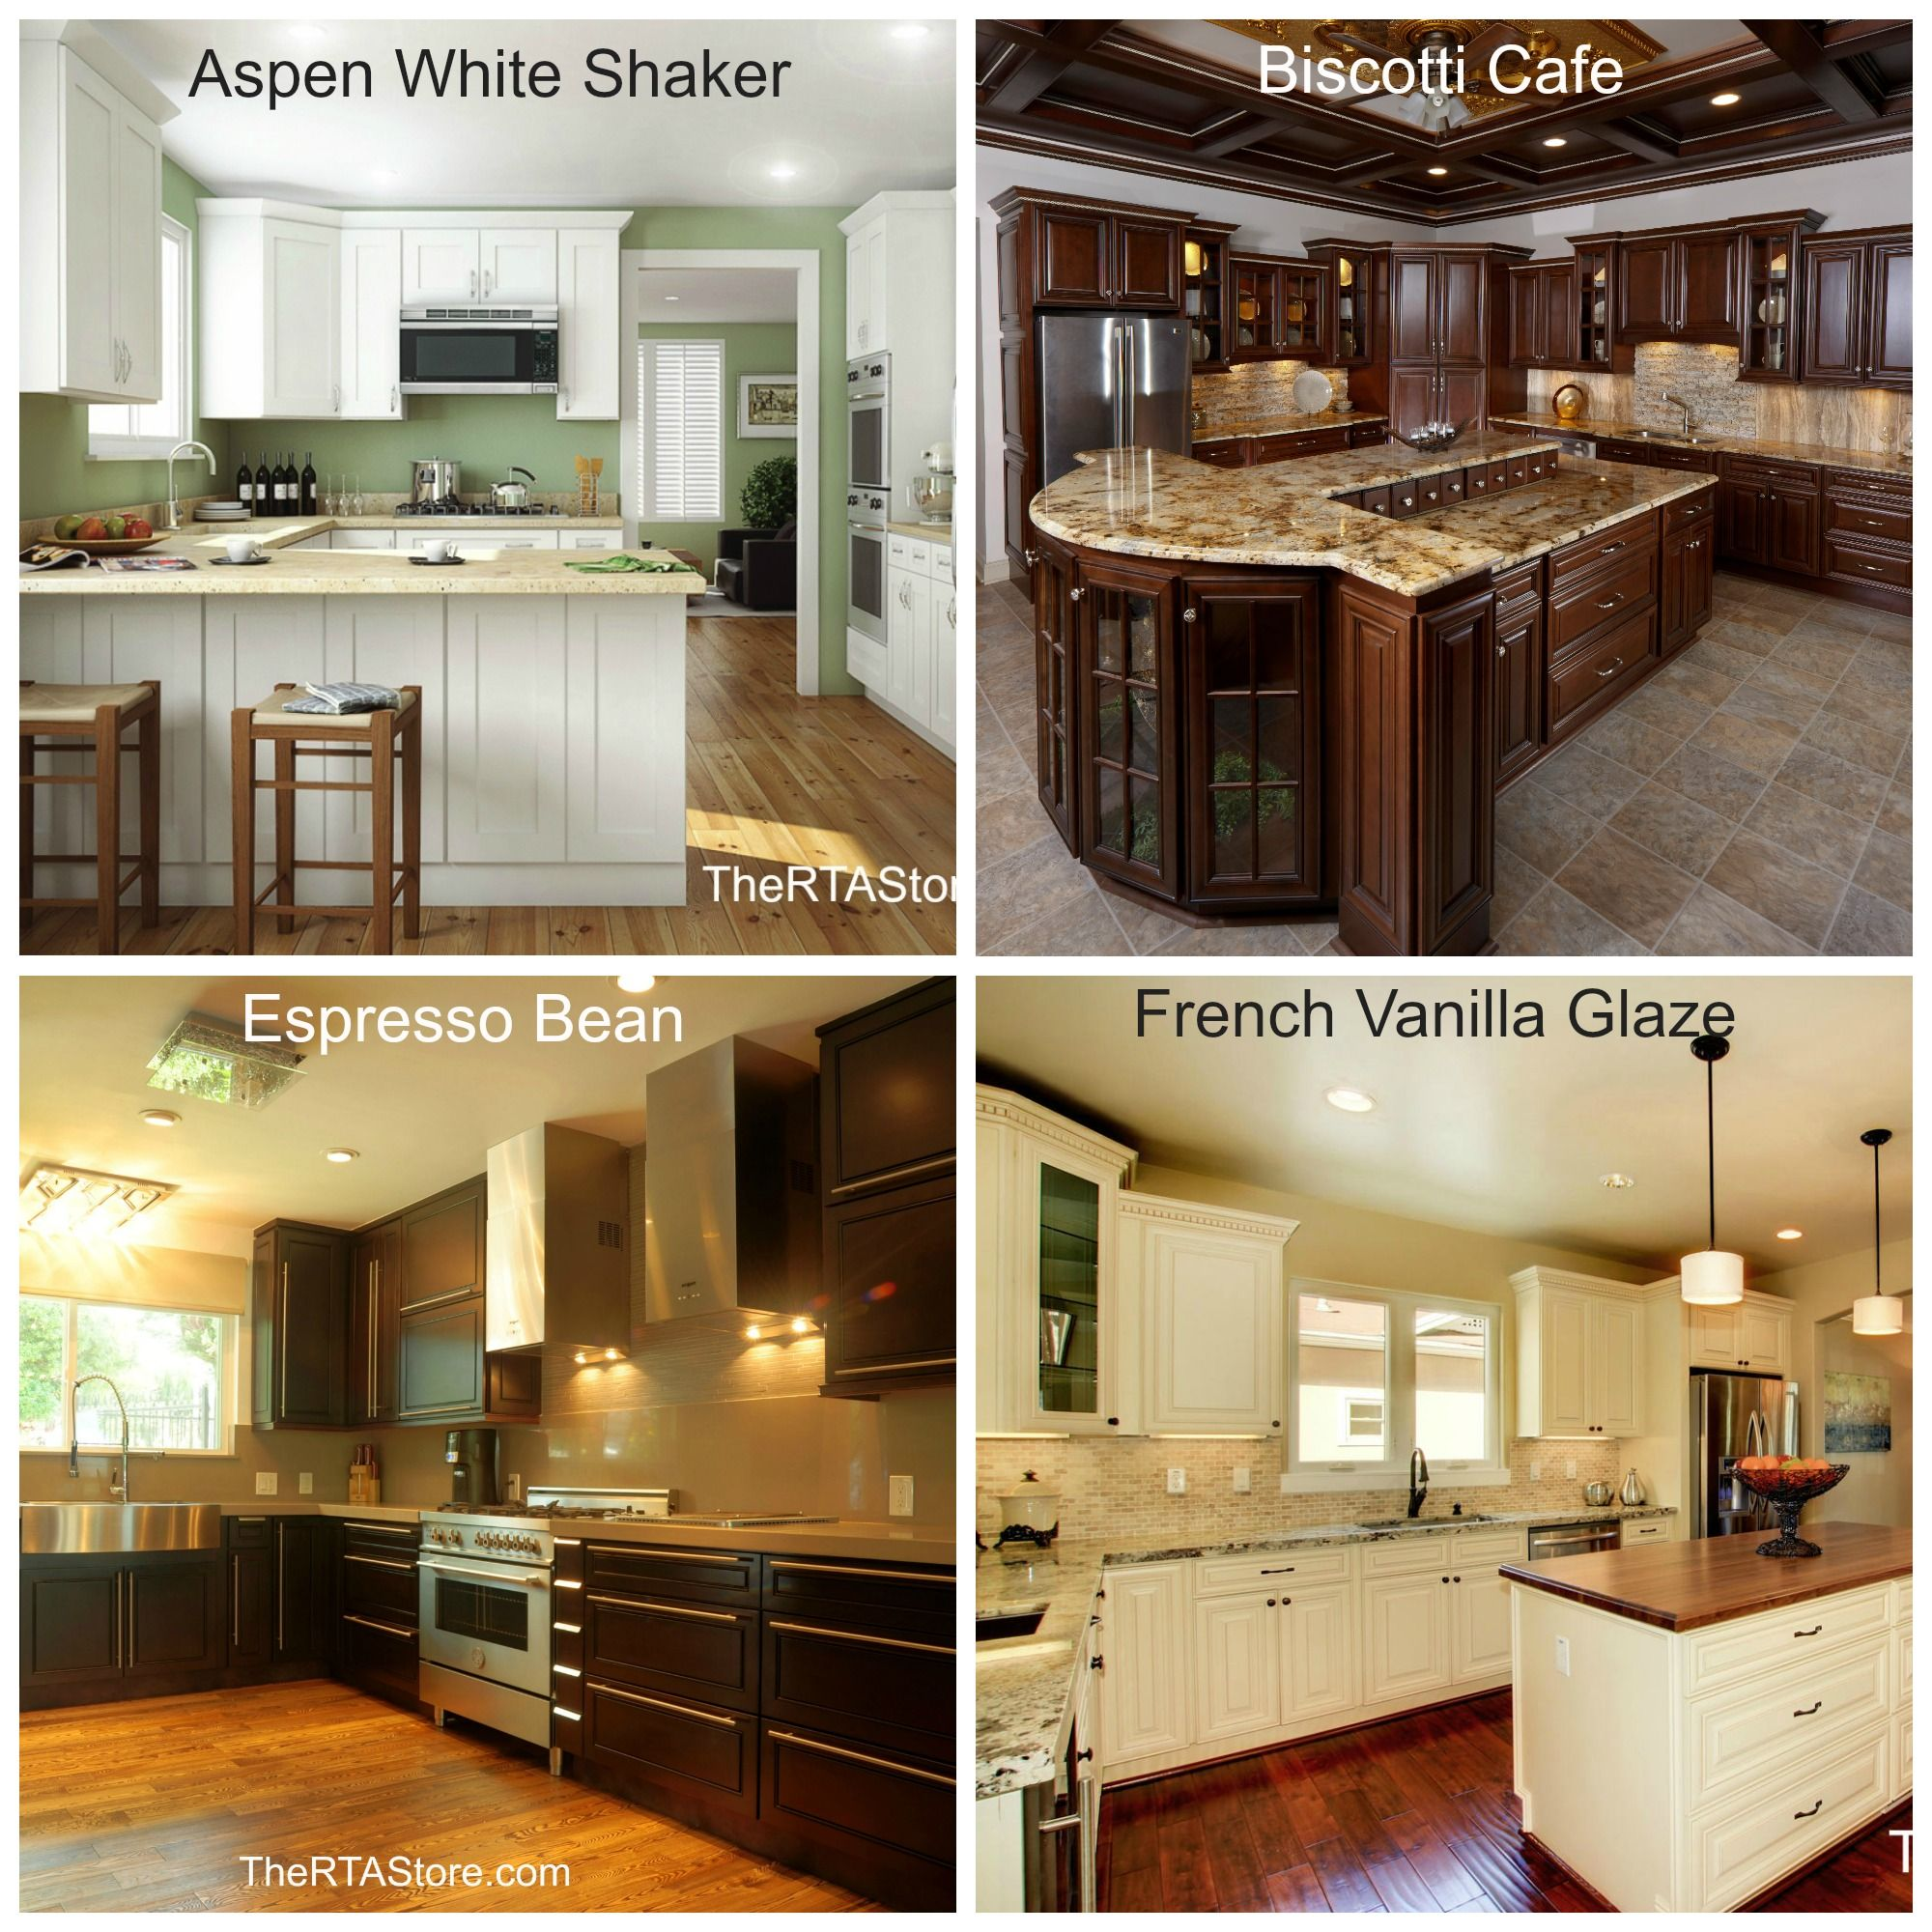 Which Kitchen Is Your Favorite Aspen White Shaker Biscotti Cafe